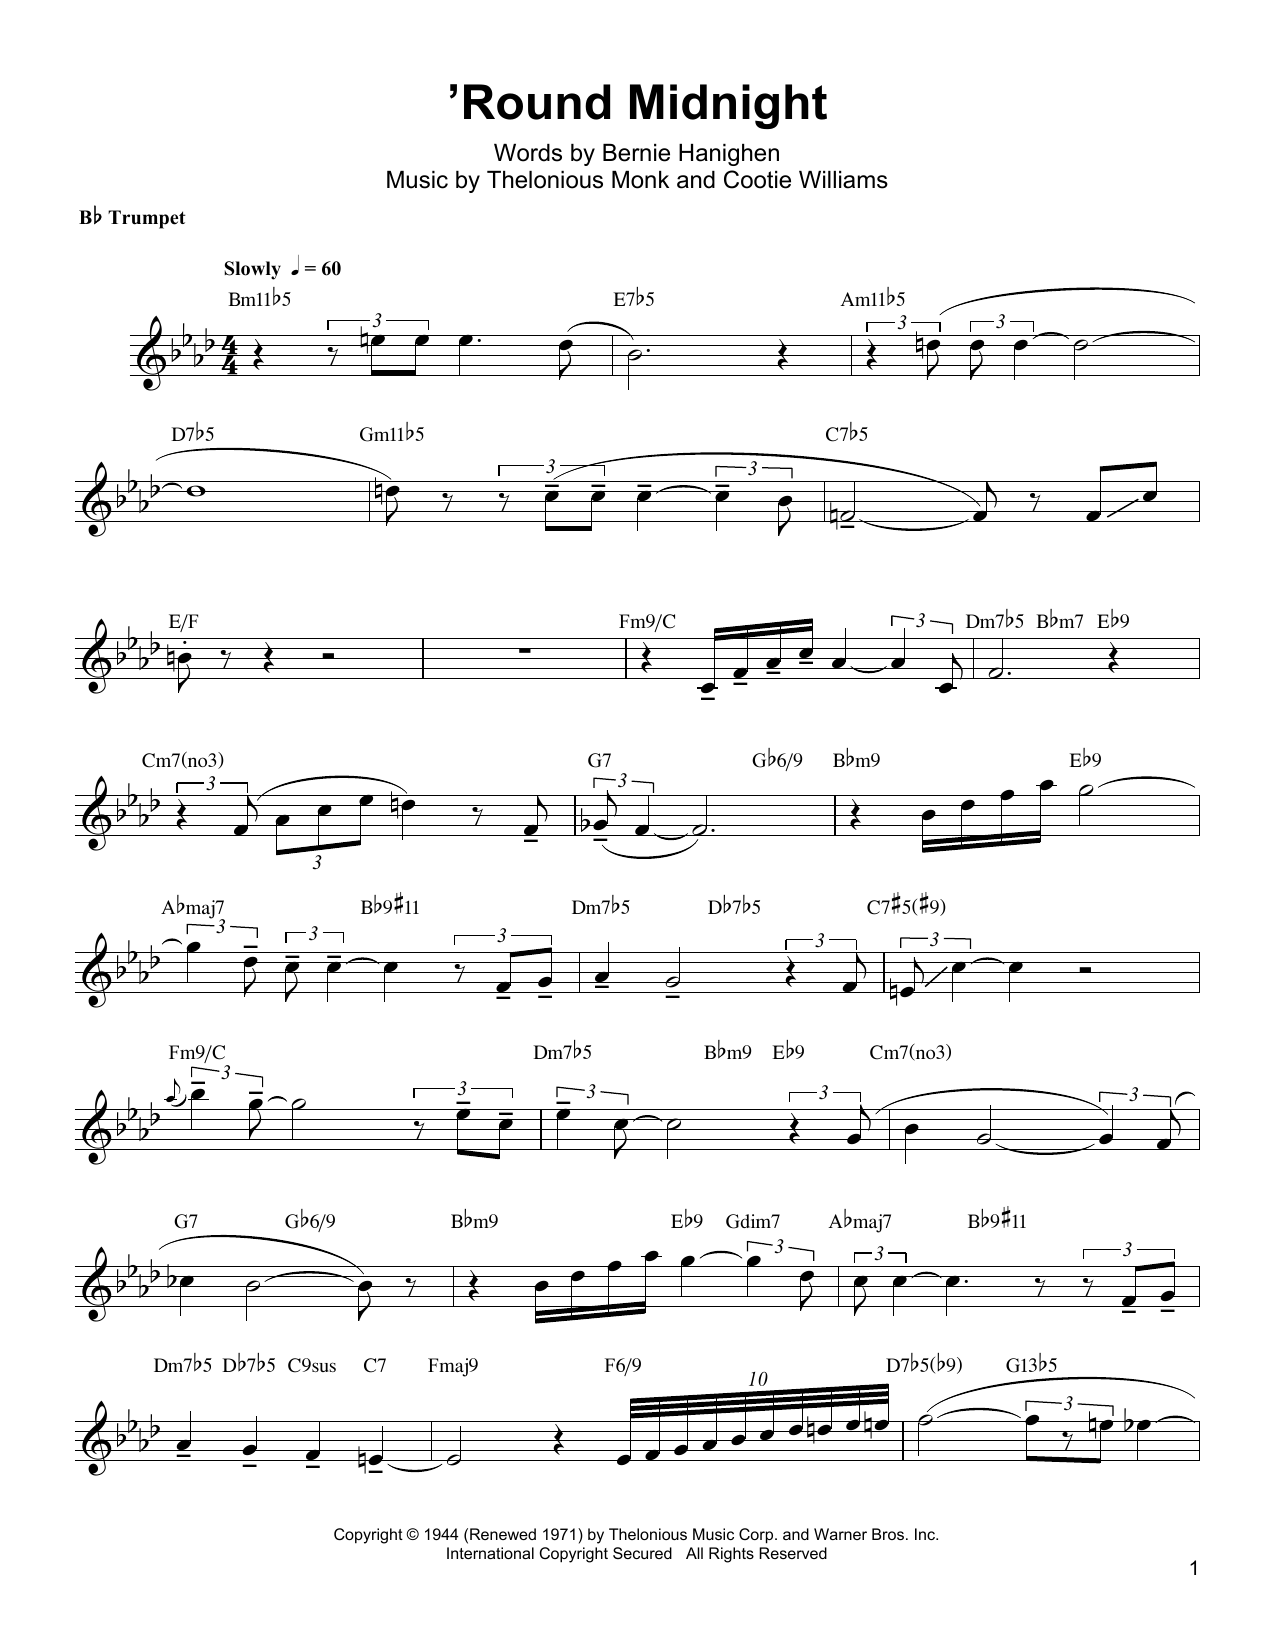 Arturo Sandoval 'Round Midnight sheet music notes and chords. Download Printable PDF.